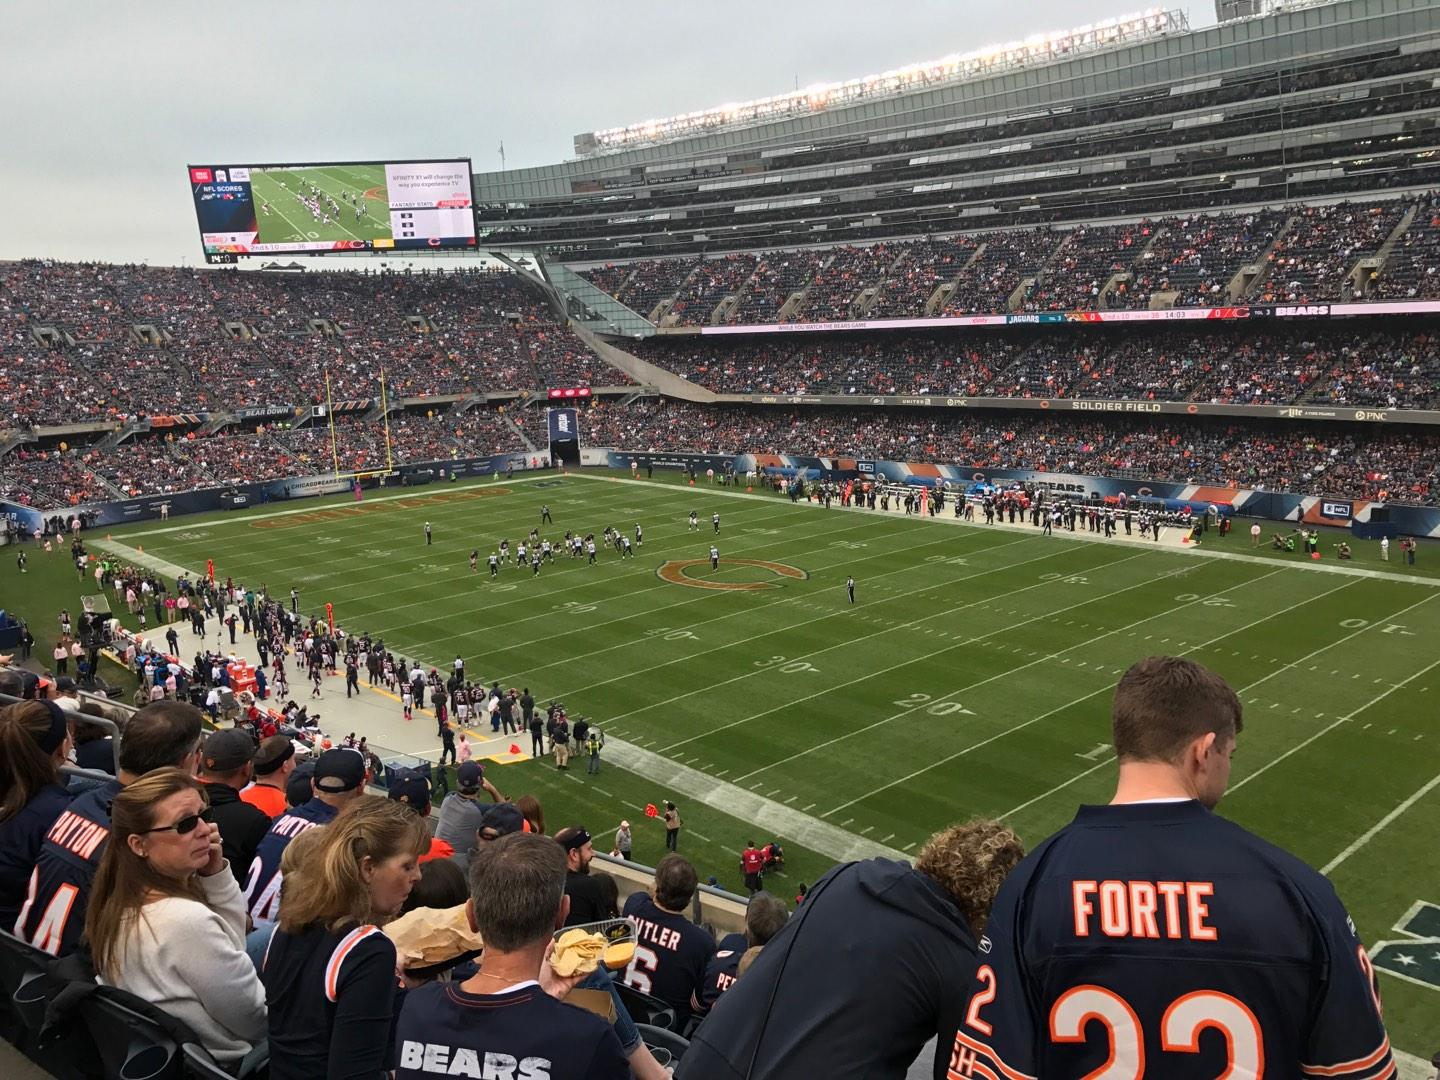 Soldier Field Section 331 Row 7 Seat 13